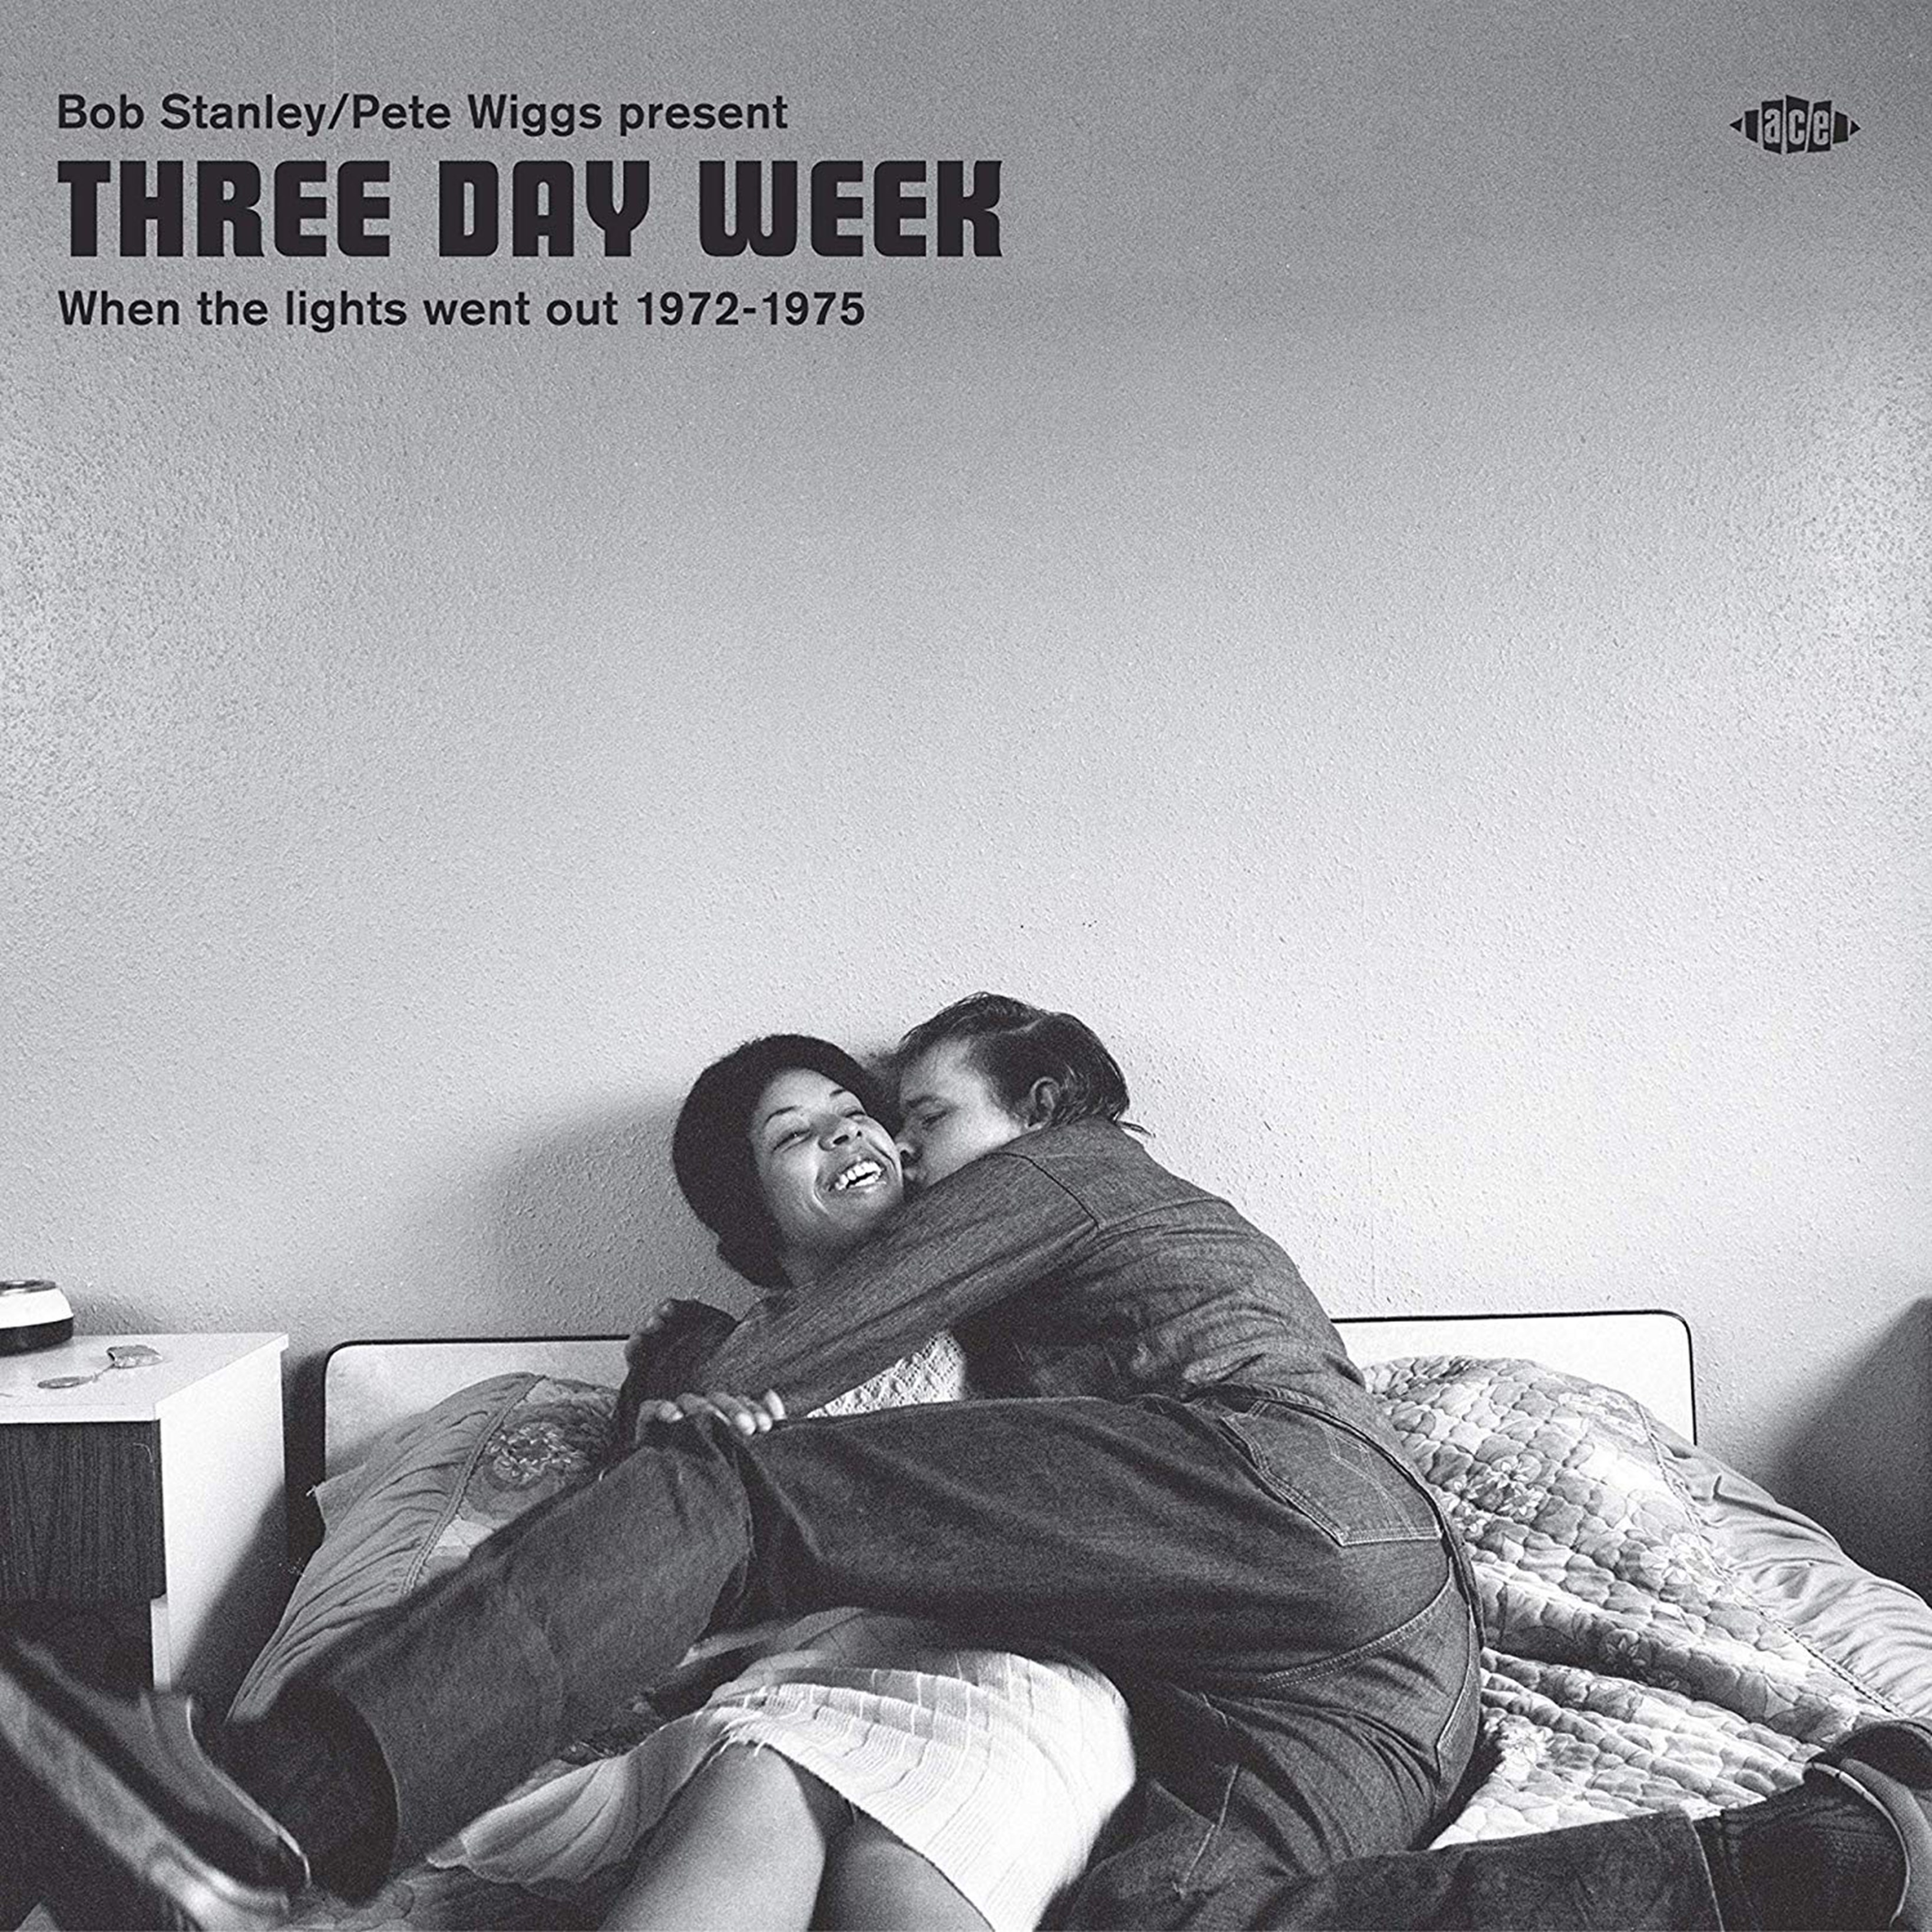 Bob Stanley & Pete Wiggs Present Three Day Week: When the Lights Went Out 1972-1975 - 1